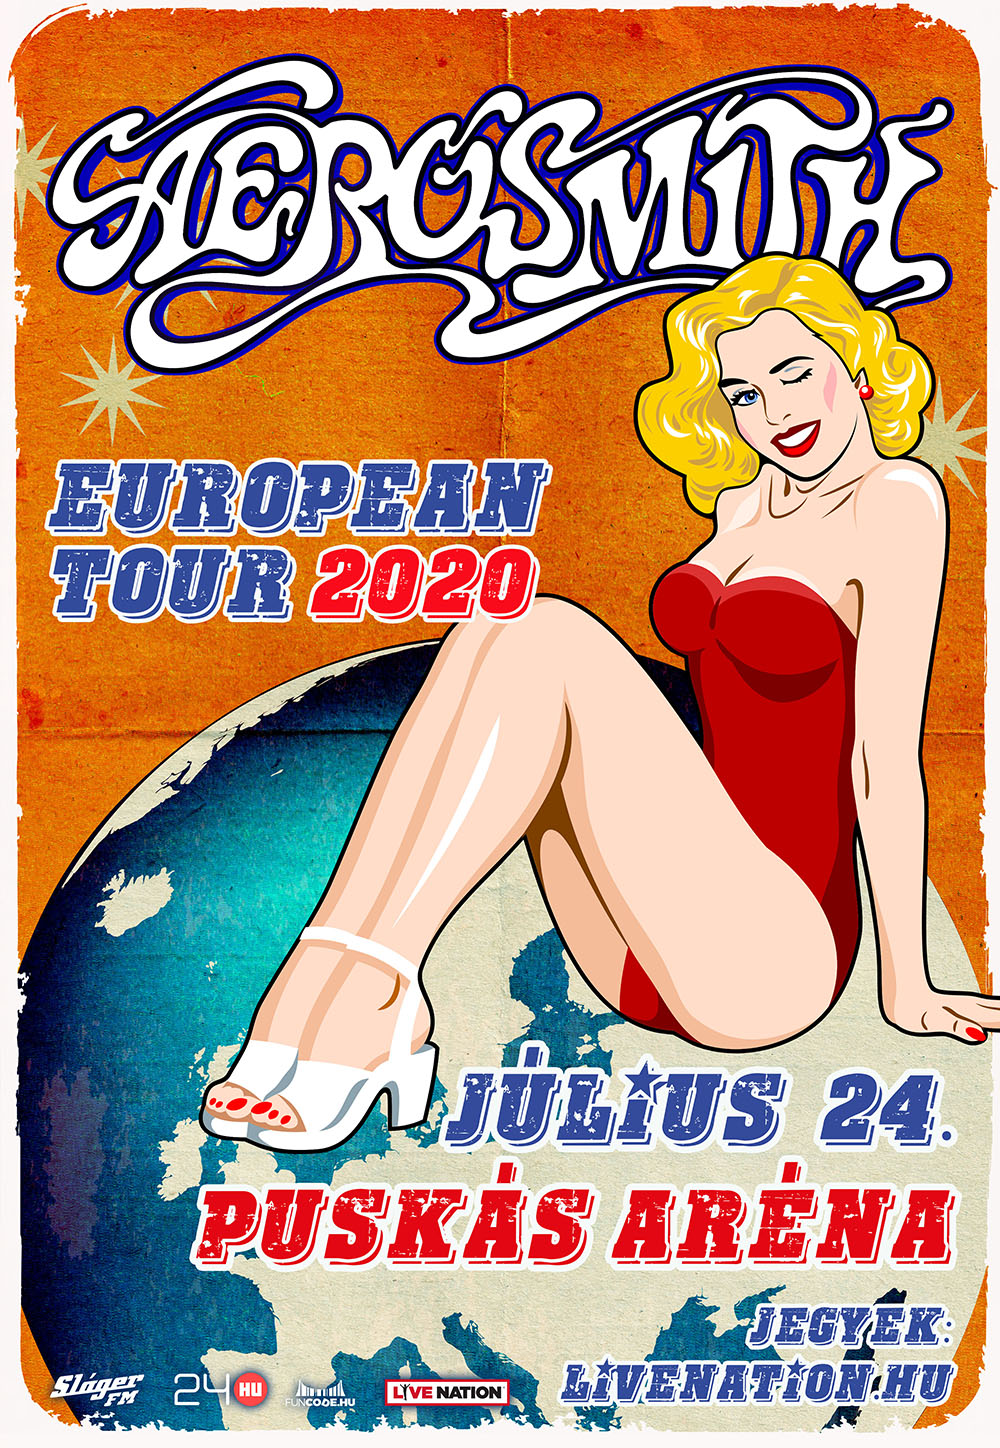 aerosmith_2020_hun_artwork.jpg